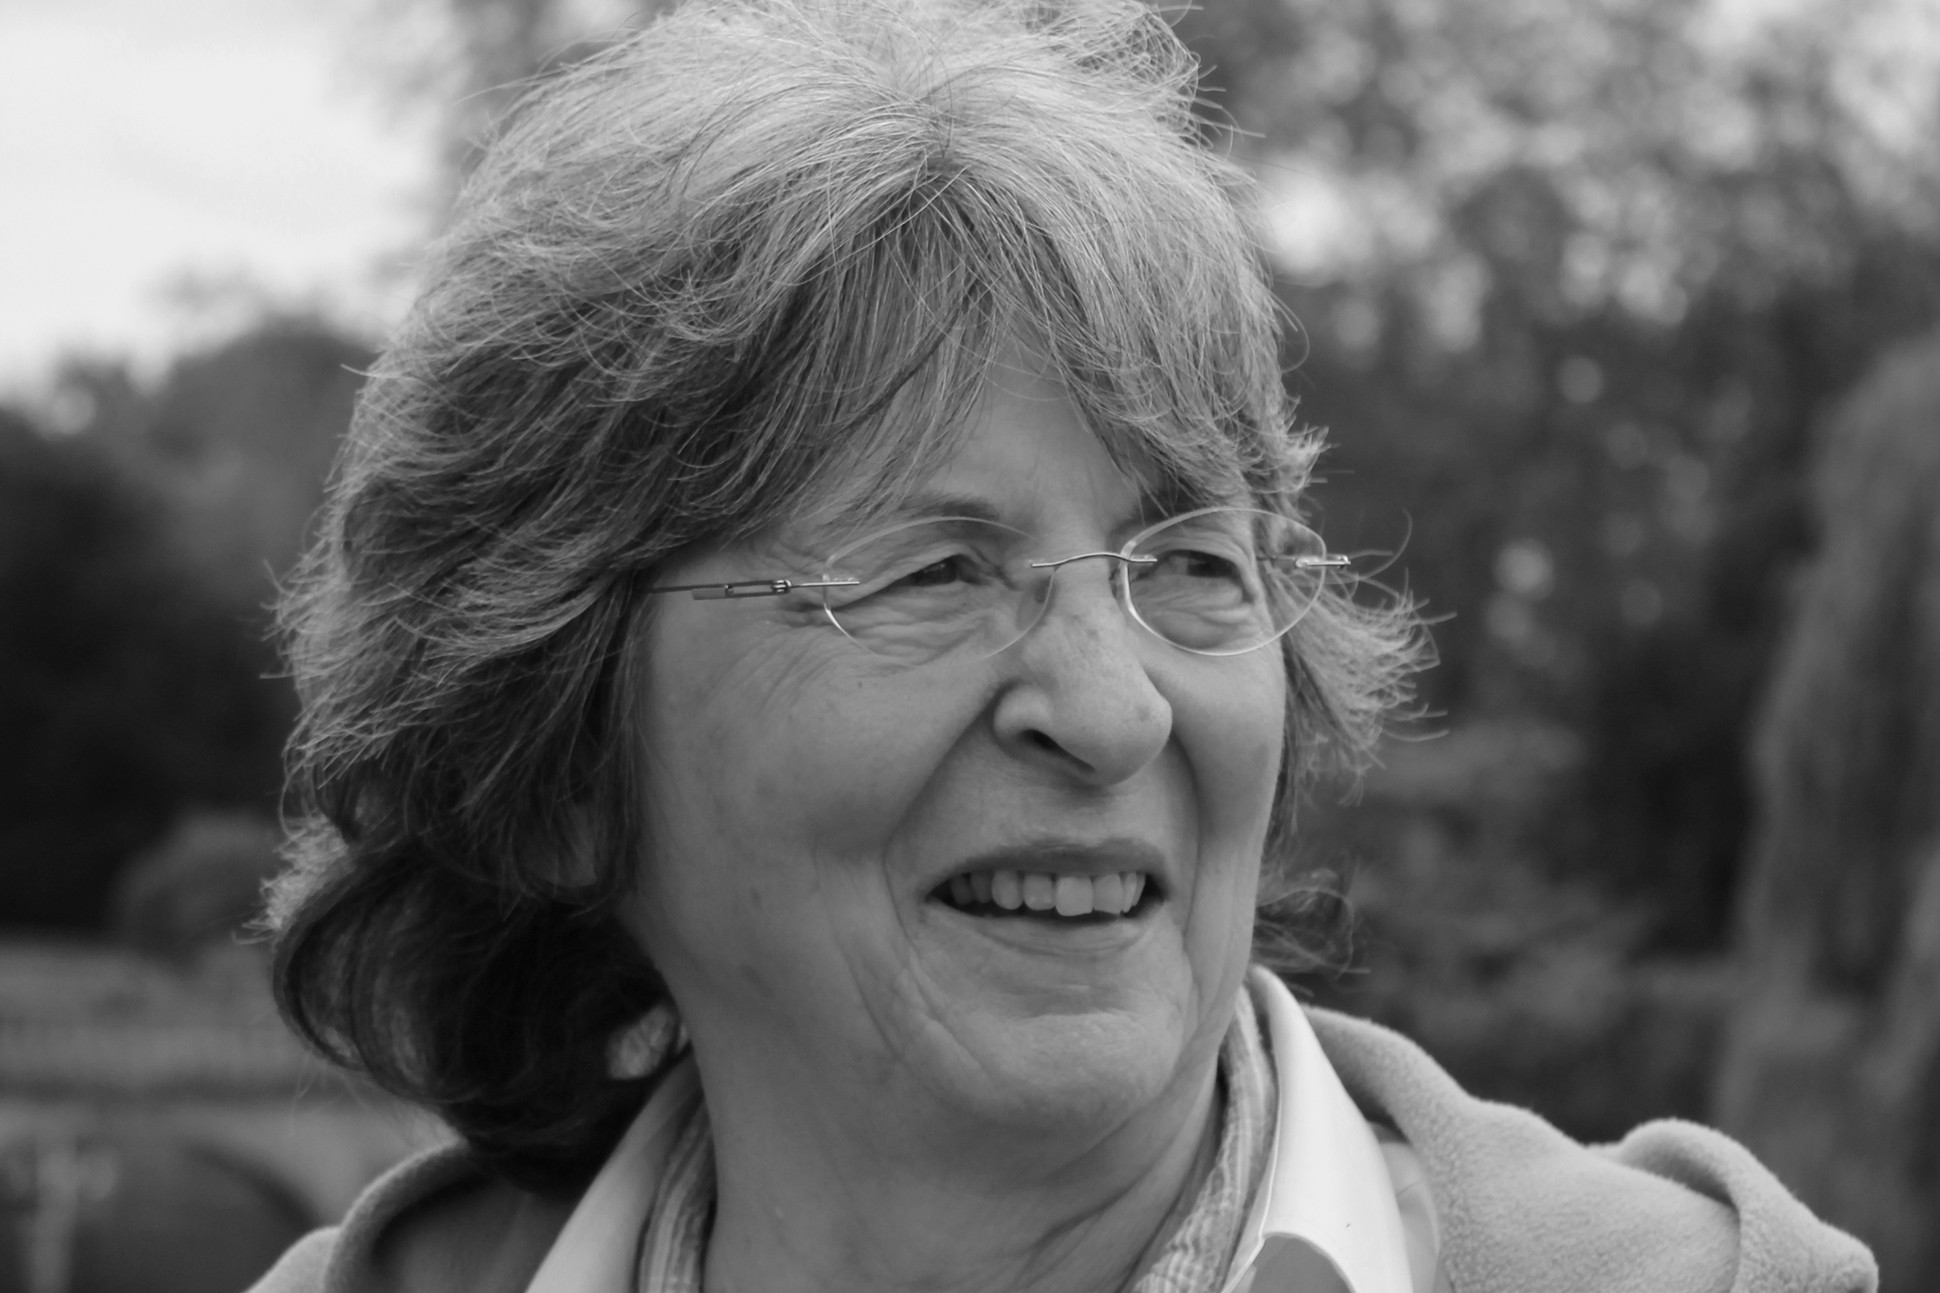 Black and white image of the poet Pattiann Rogers.